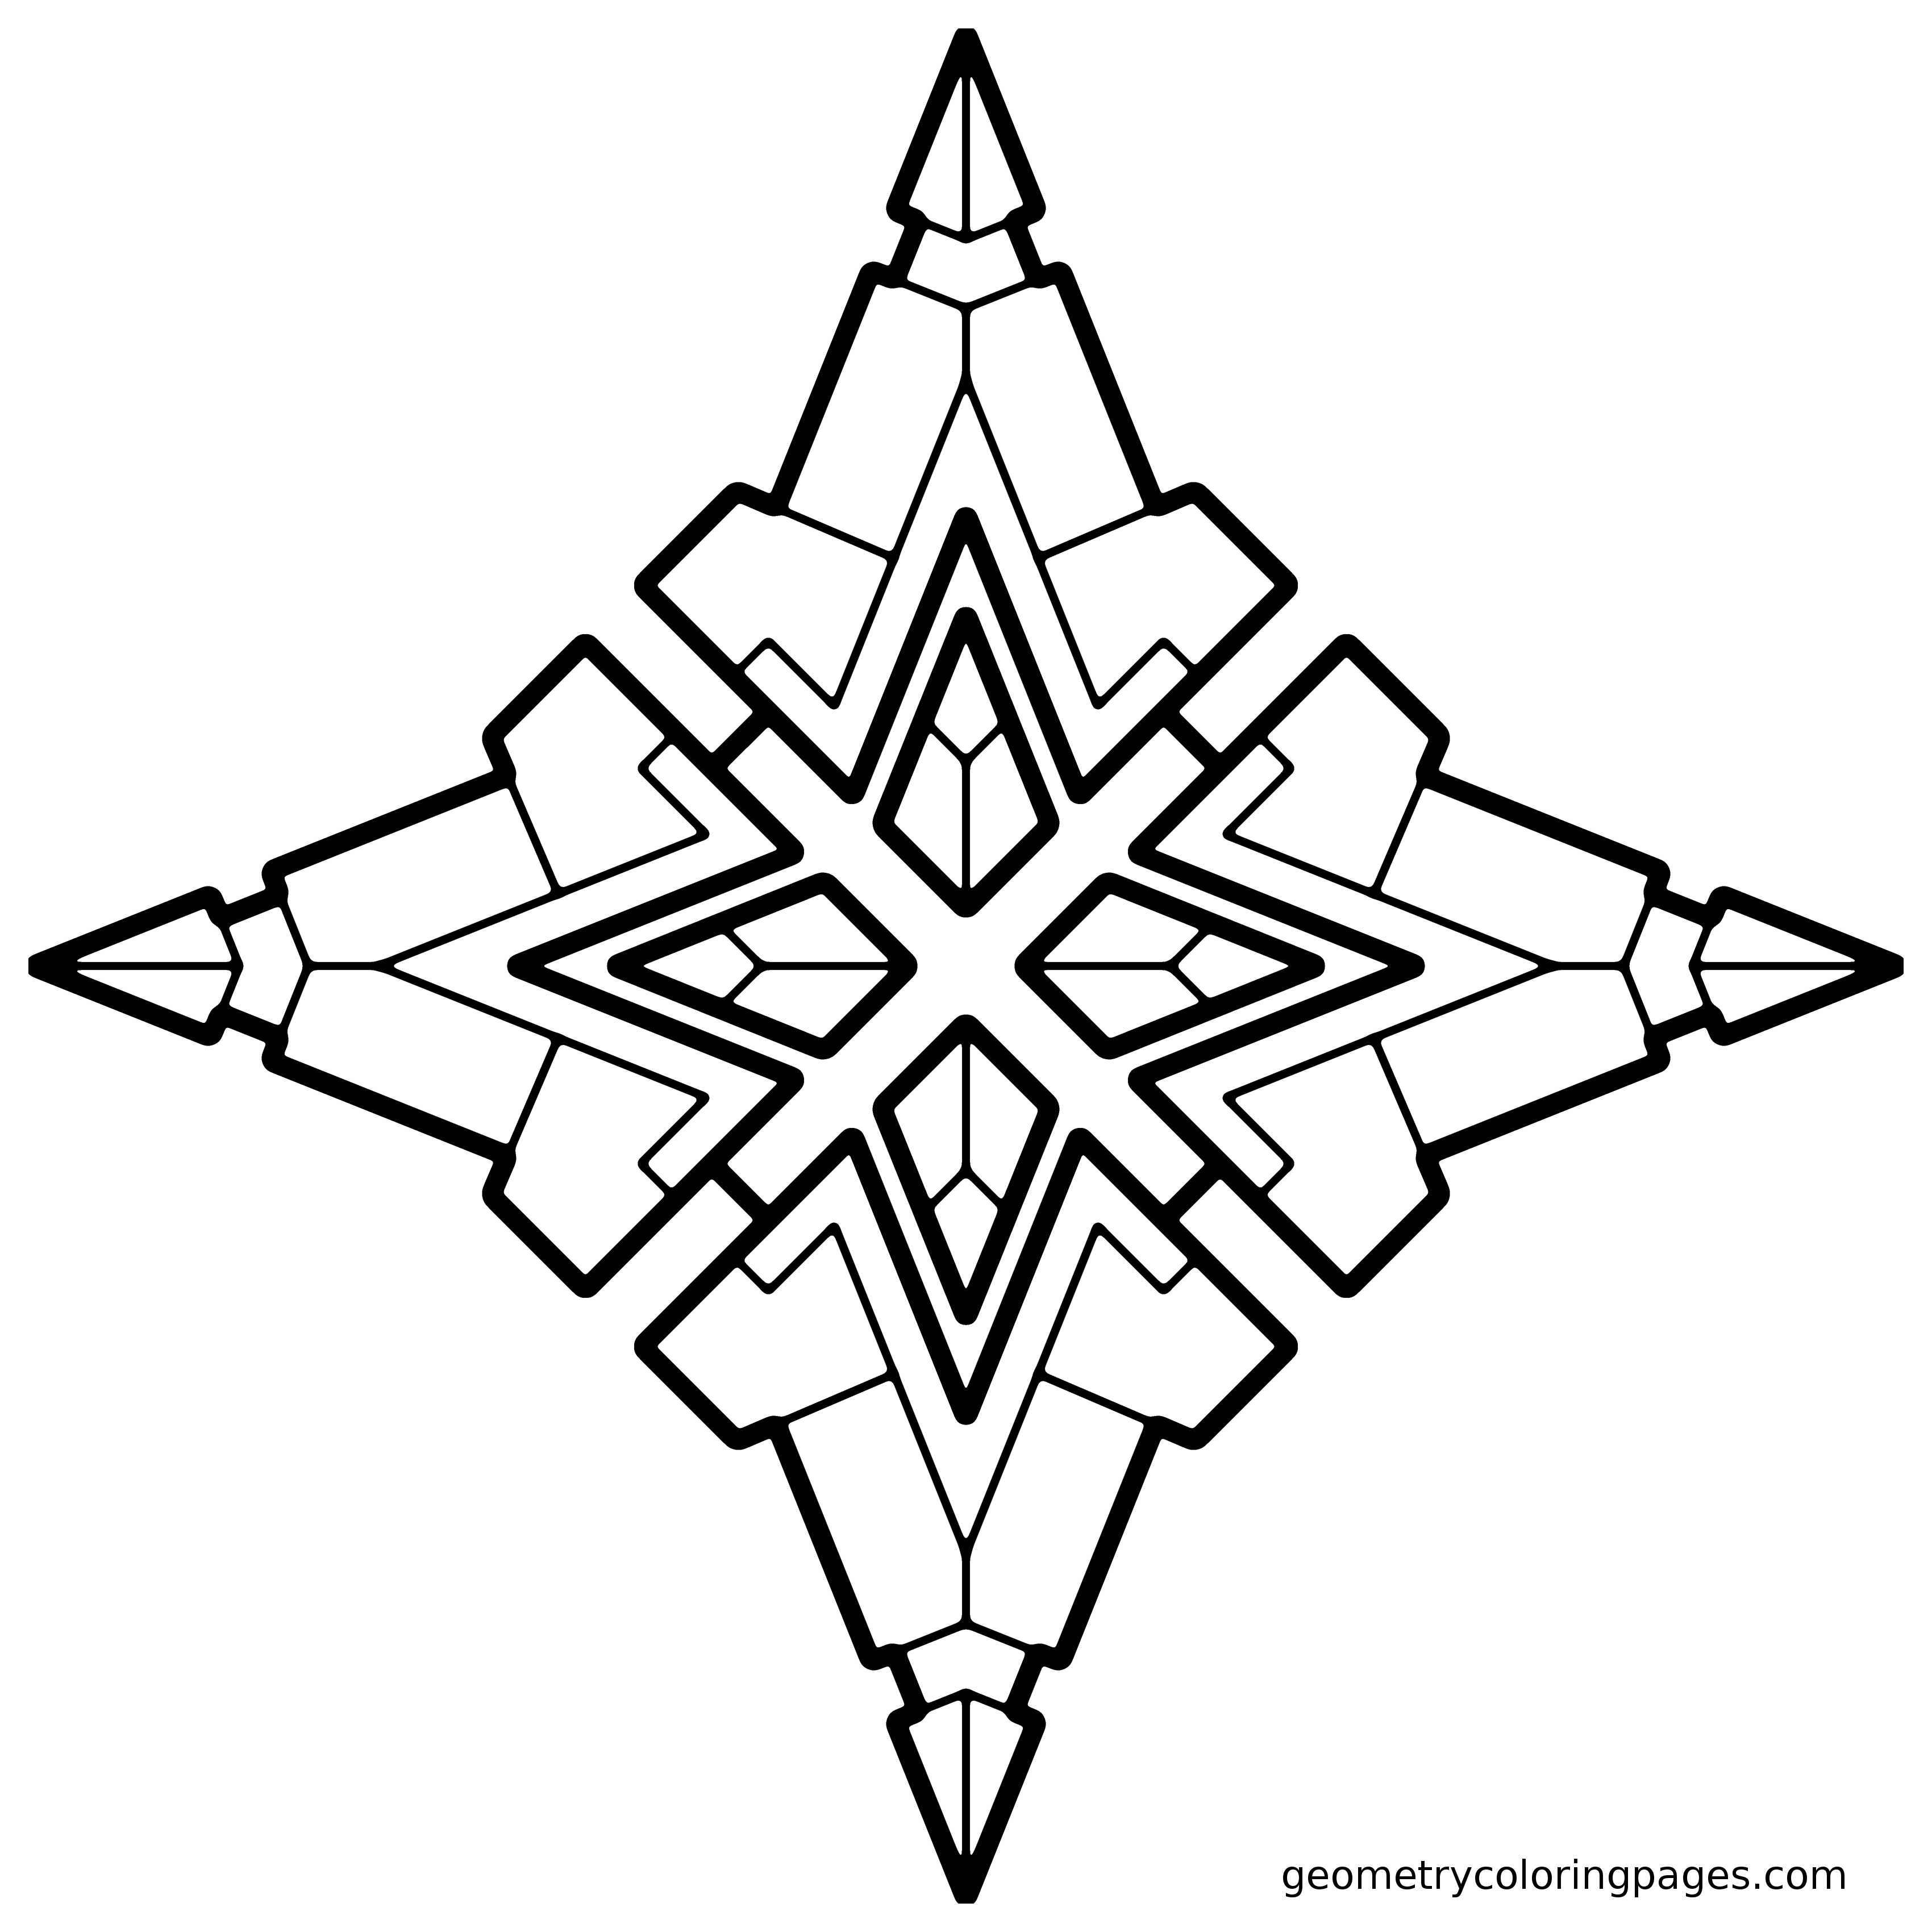 Geometry clipart cute Diagram Playground%20safety%20coloring%20pages And More Clip